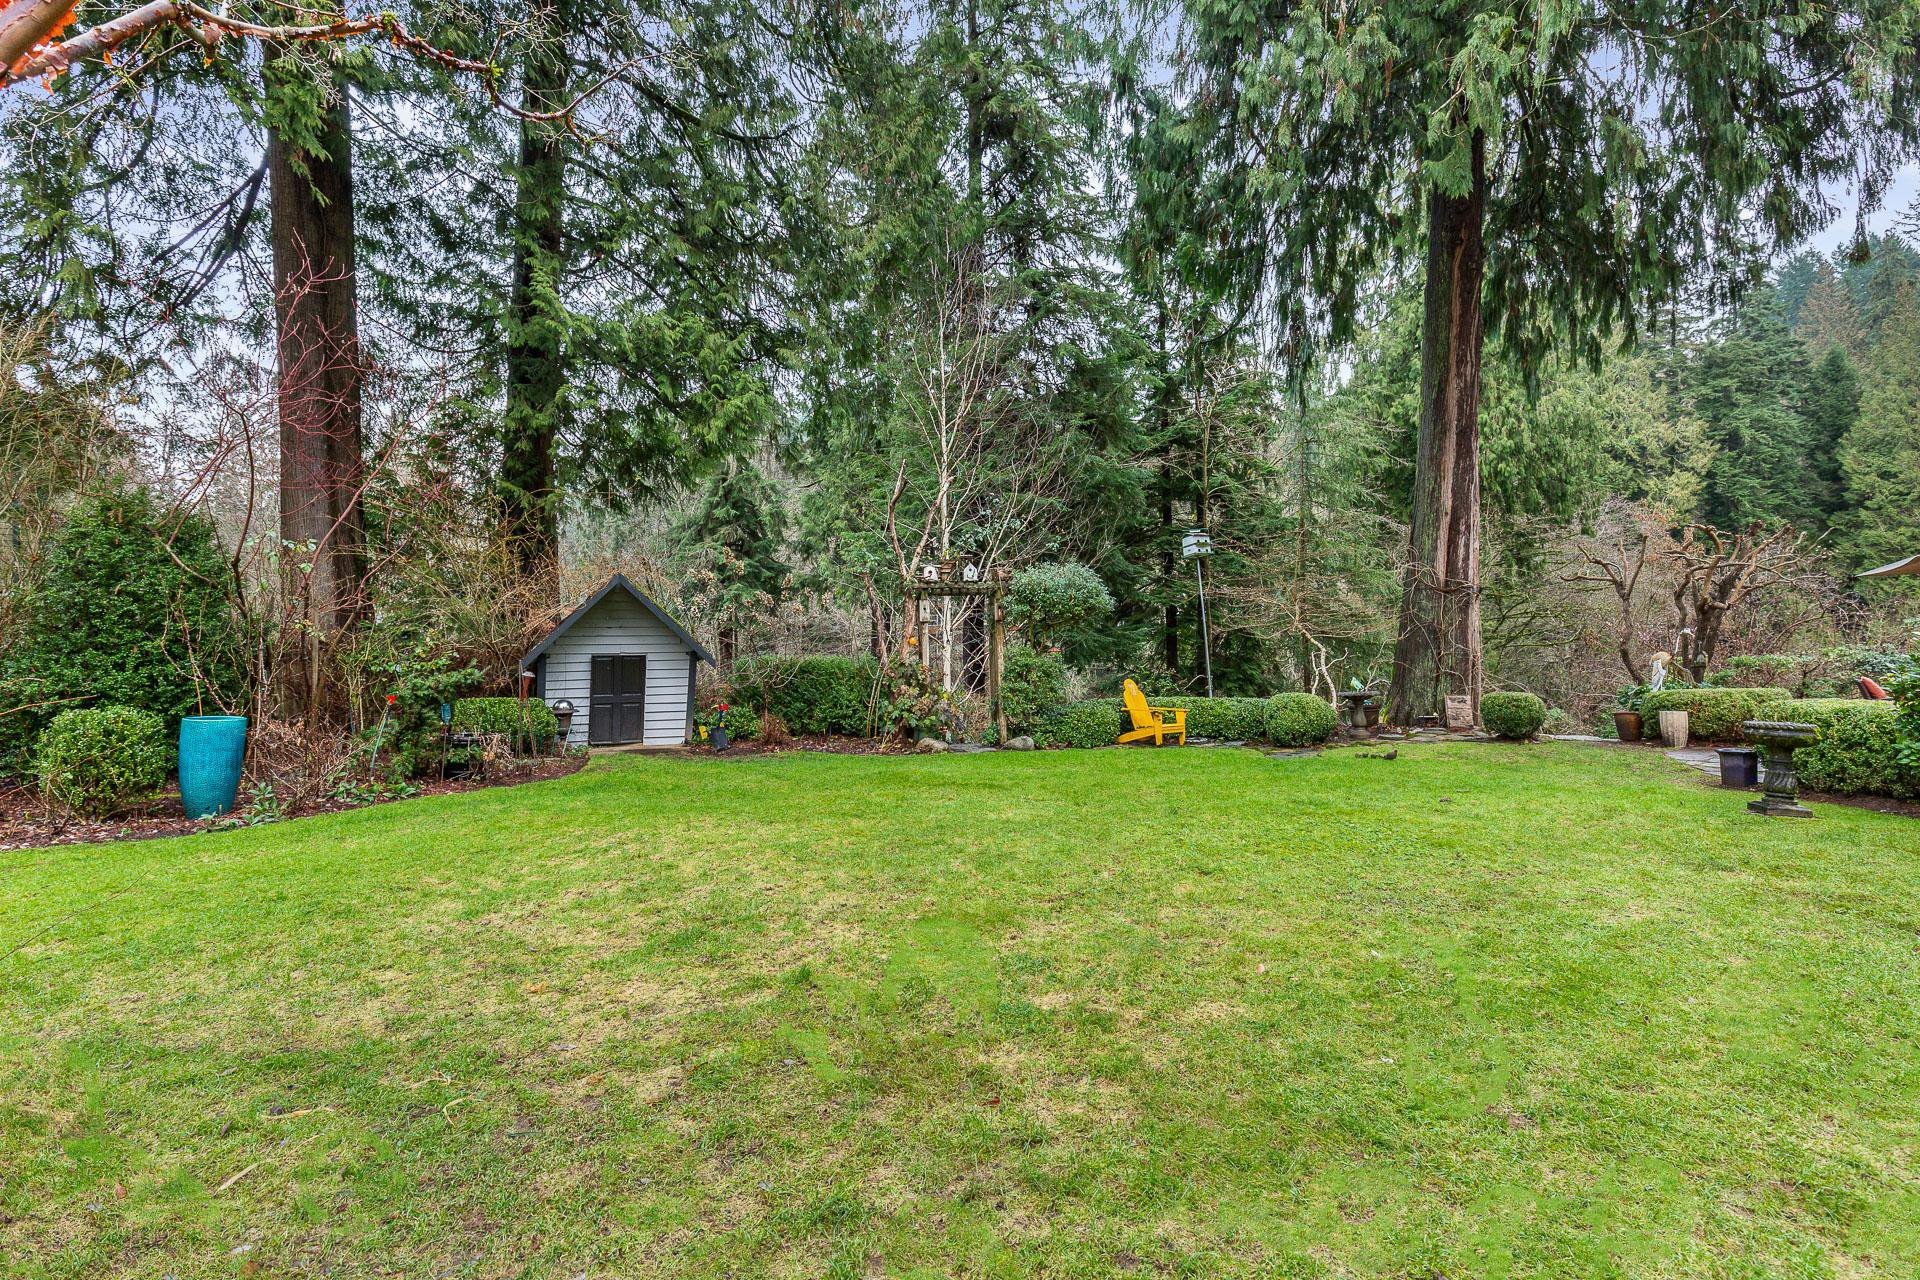 Photo 3: Photos: 1160 Hilary Place in North Vancouver: Seymour NV House for sale : MLS®# R2336427